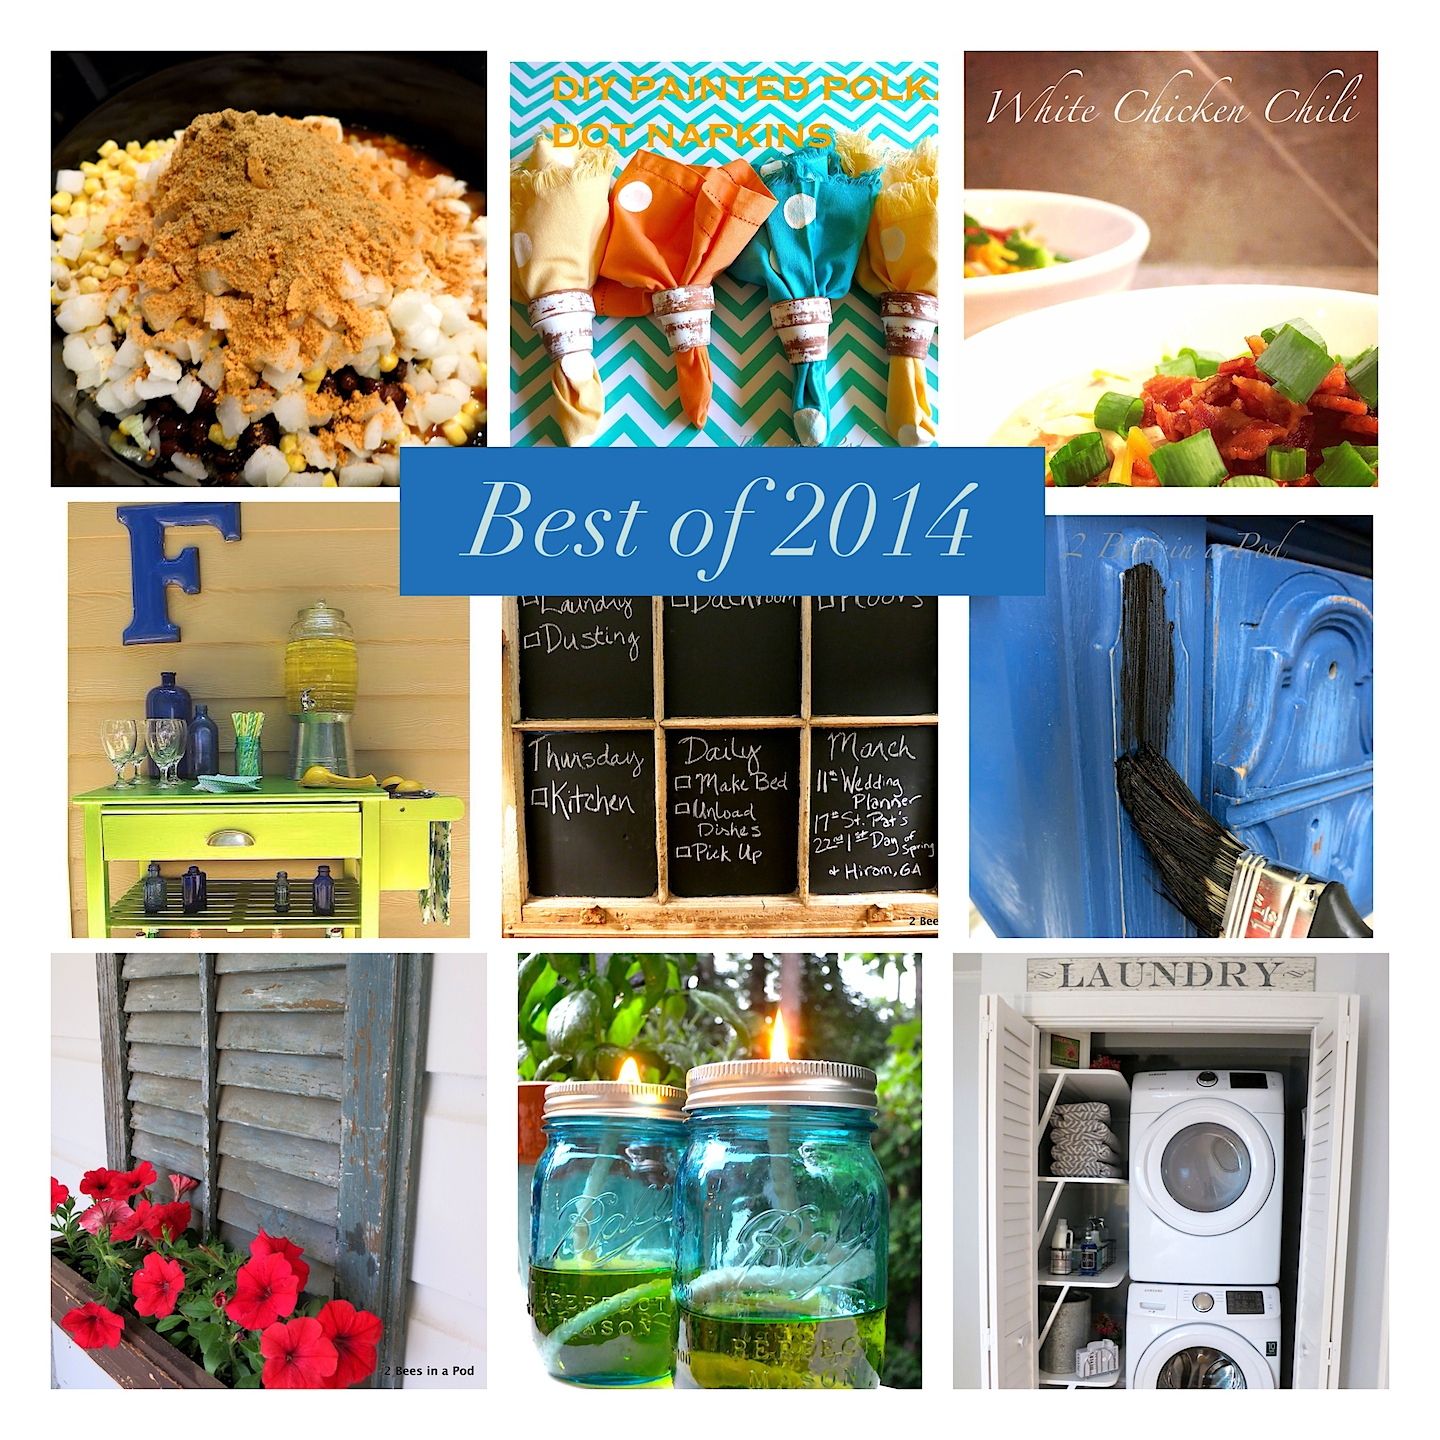 2 Bees in a Pod - Best of 2014 from our blog